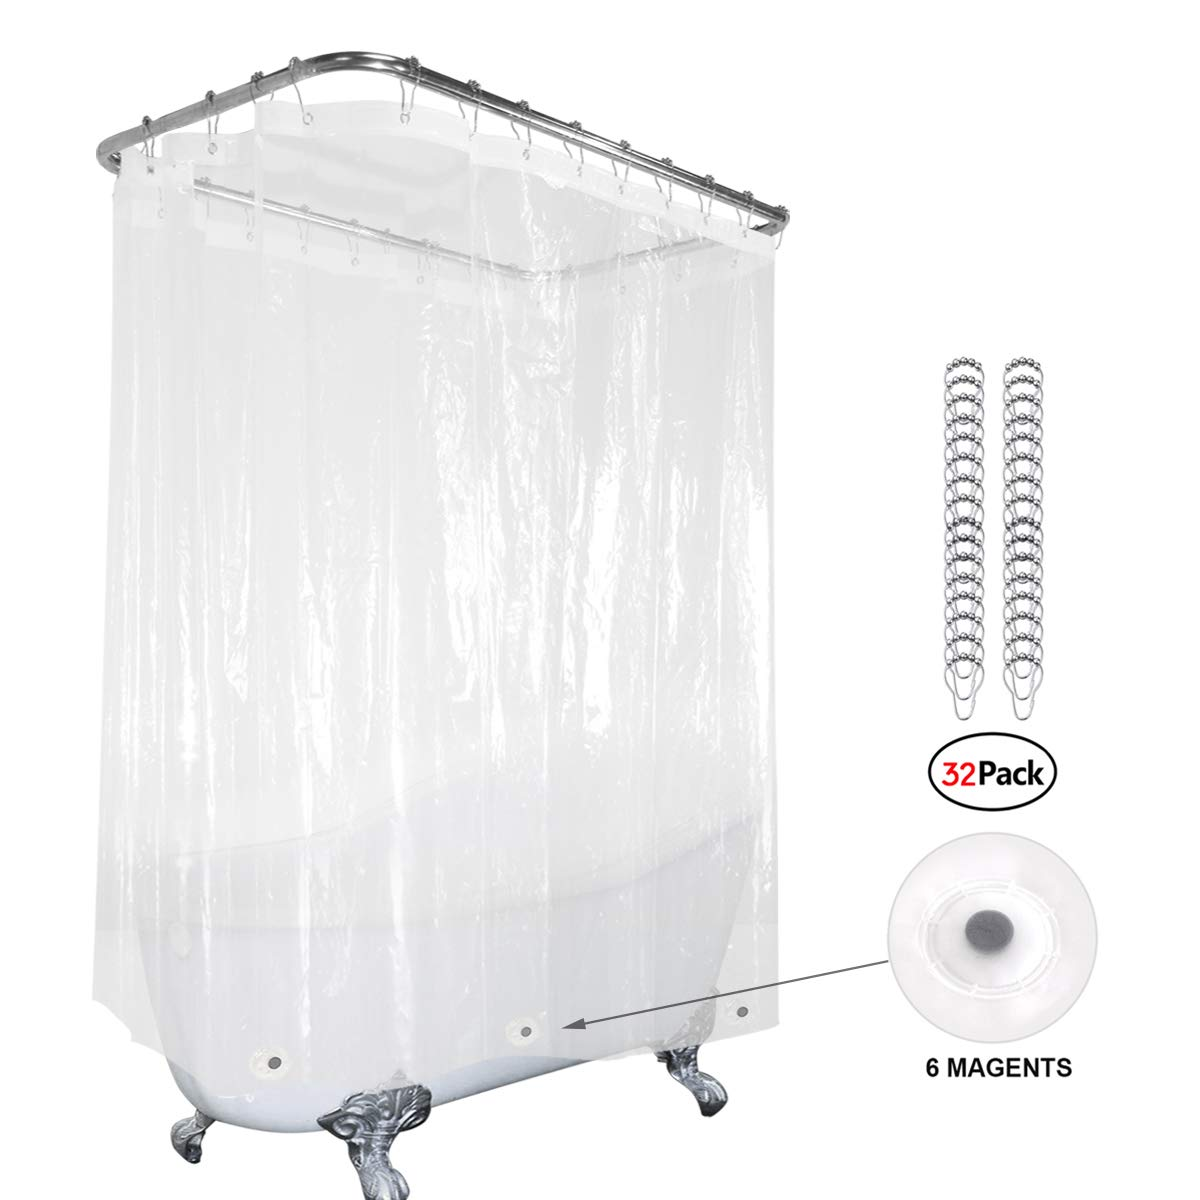 Clear Clawfoot Tub All Around Shower Curtain 180x70 Inch with Magnets Wrap Around Bathroom Shower Panel Set Extra Wide 32 Pack Shower Hooks Included Heavy Duty